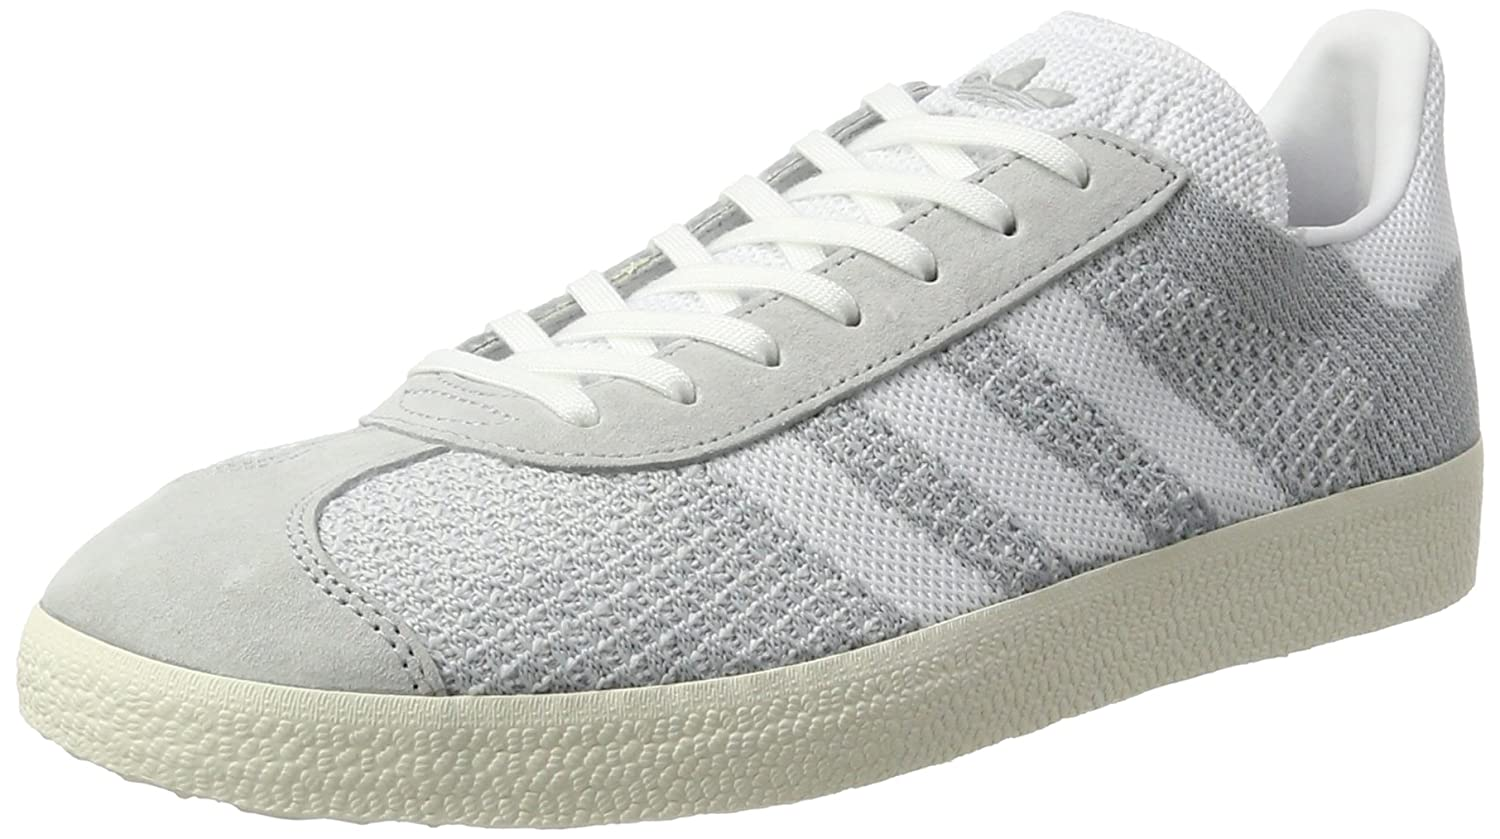 online store f0f50 4ab3f adidas Gazelle Primeknit, Sneakers Basses Homme, Bleu well-wreapped